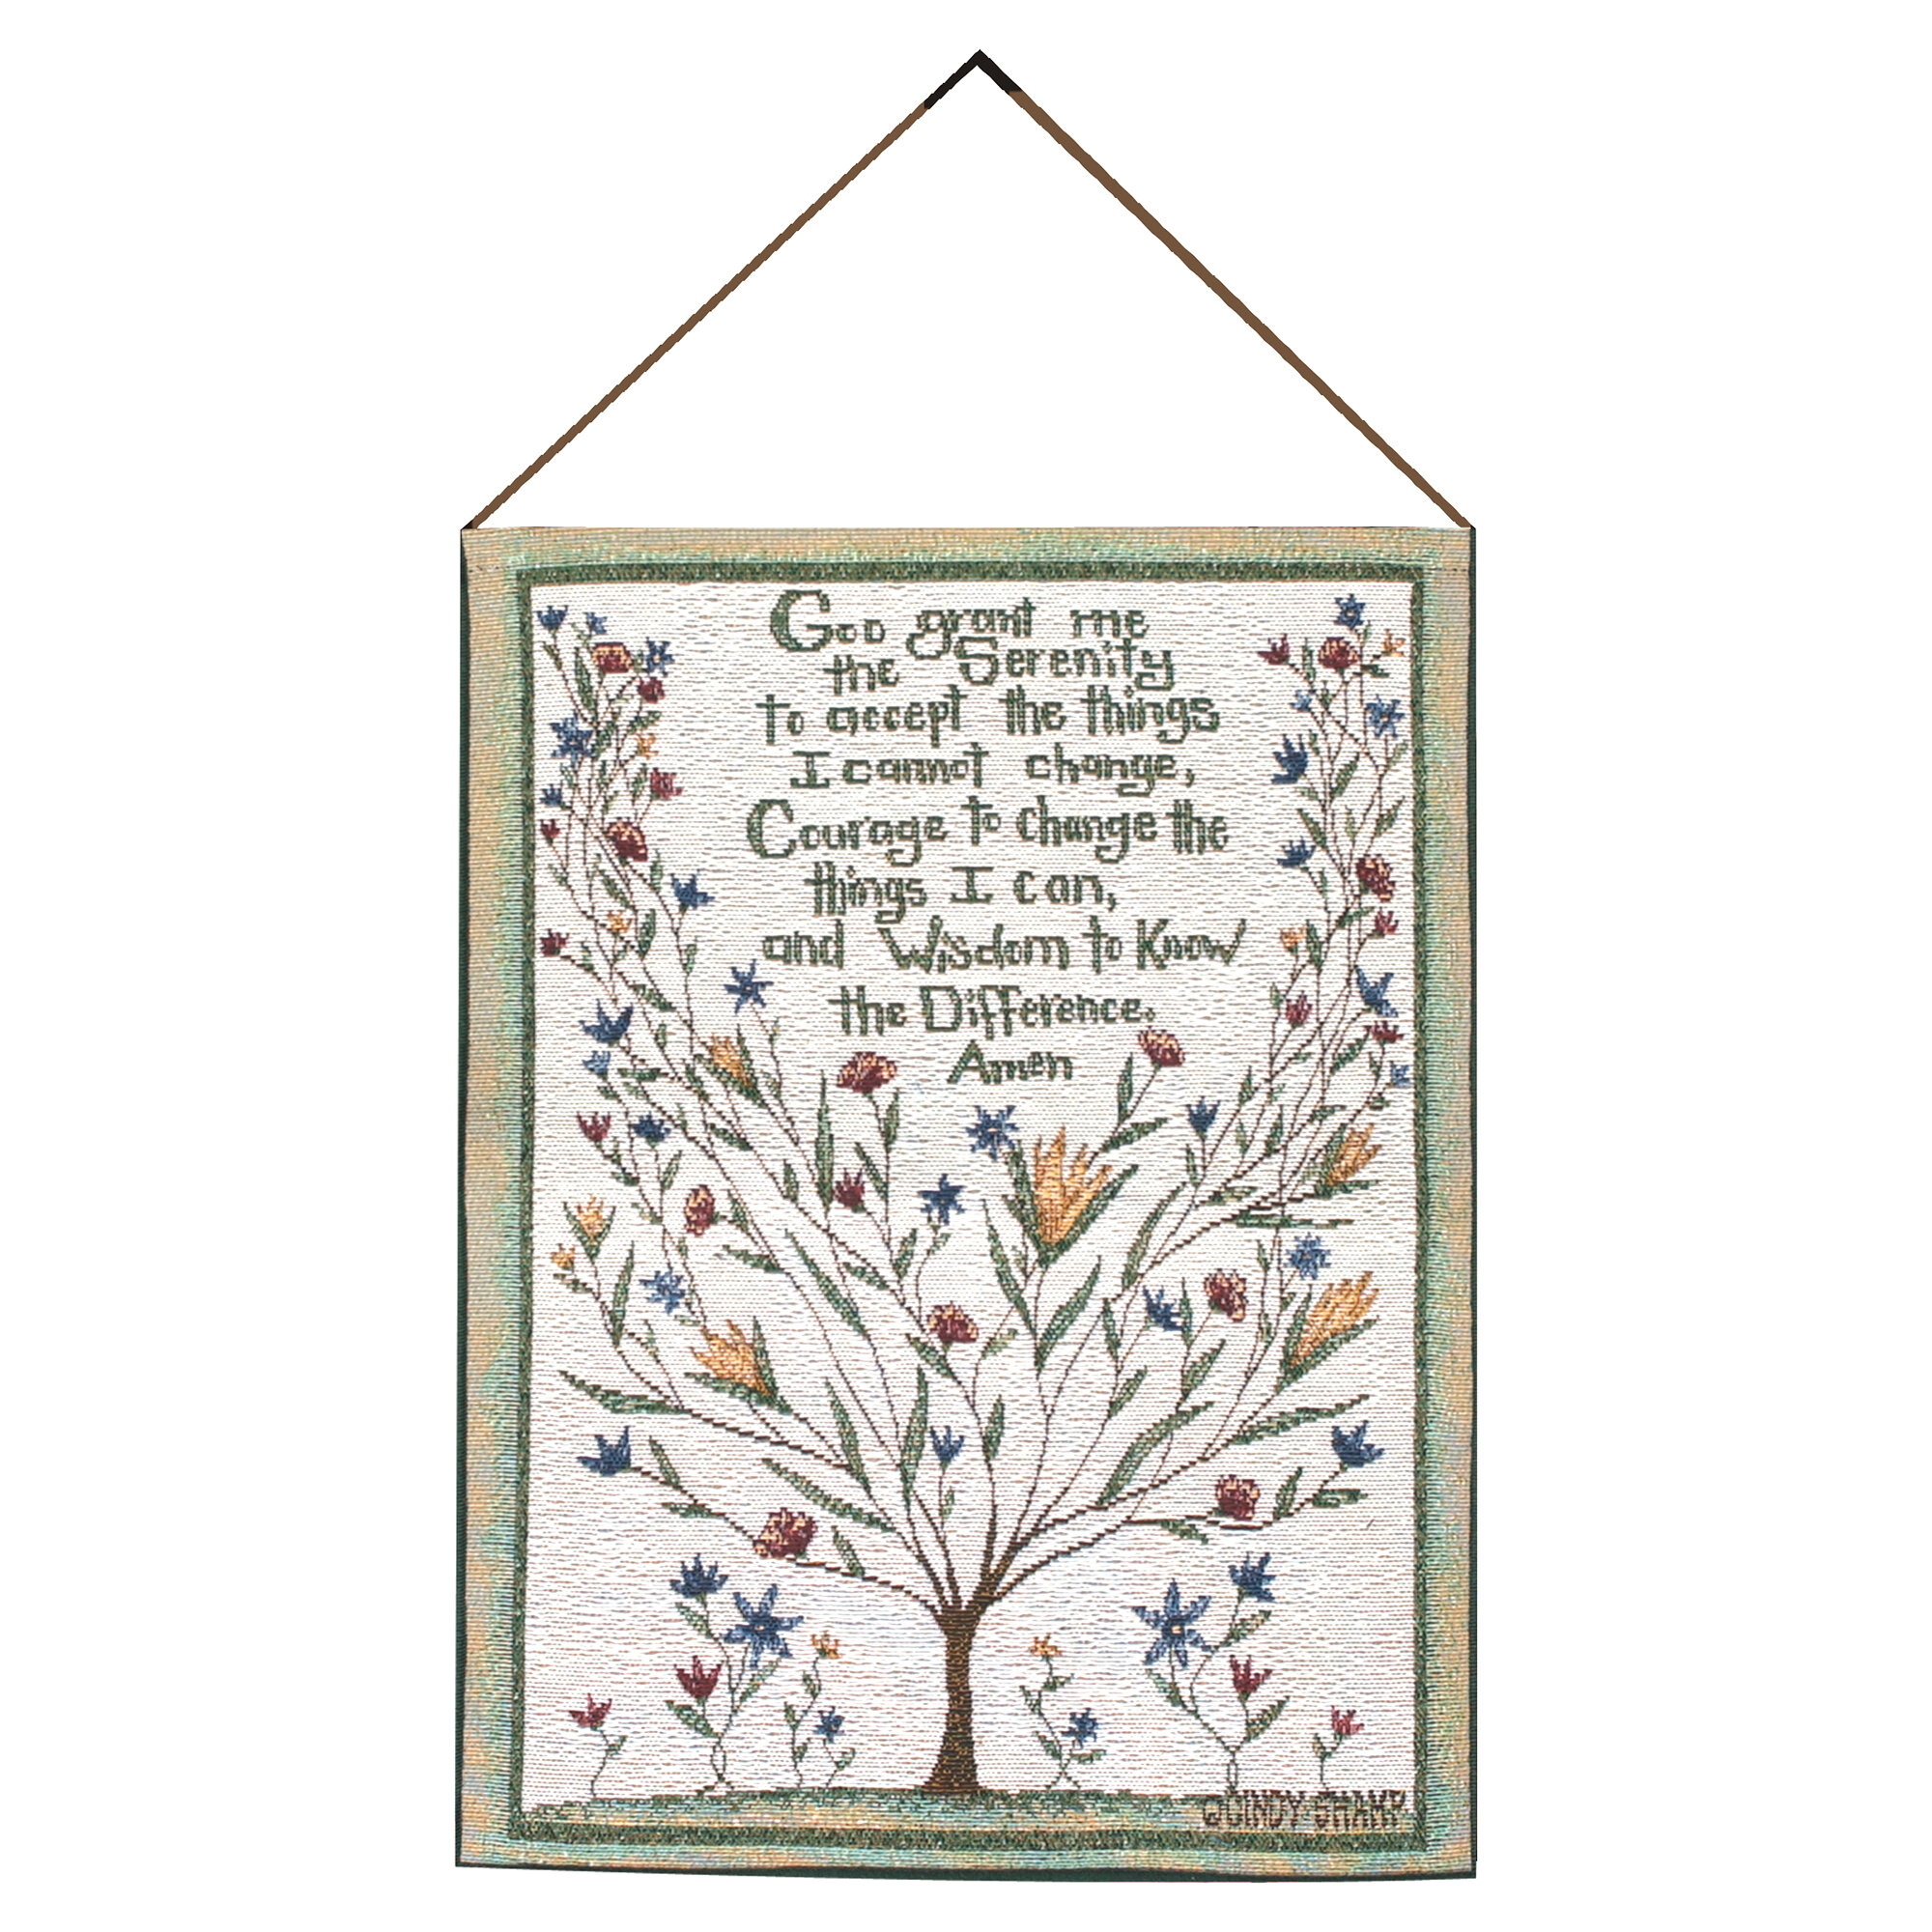 Serenity Prayer Tapestry And Wall Hanging Intended For Current Blended Fabric Trust In The Lord Tapestries And Wall Hangings (View 6 of 20)